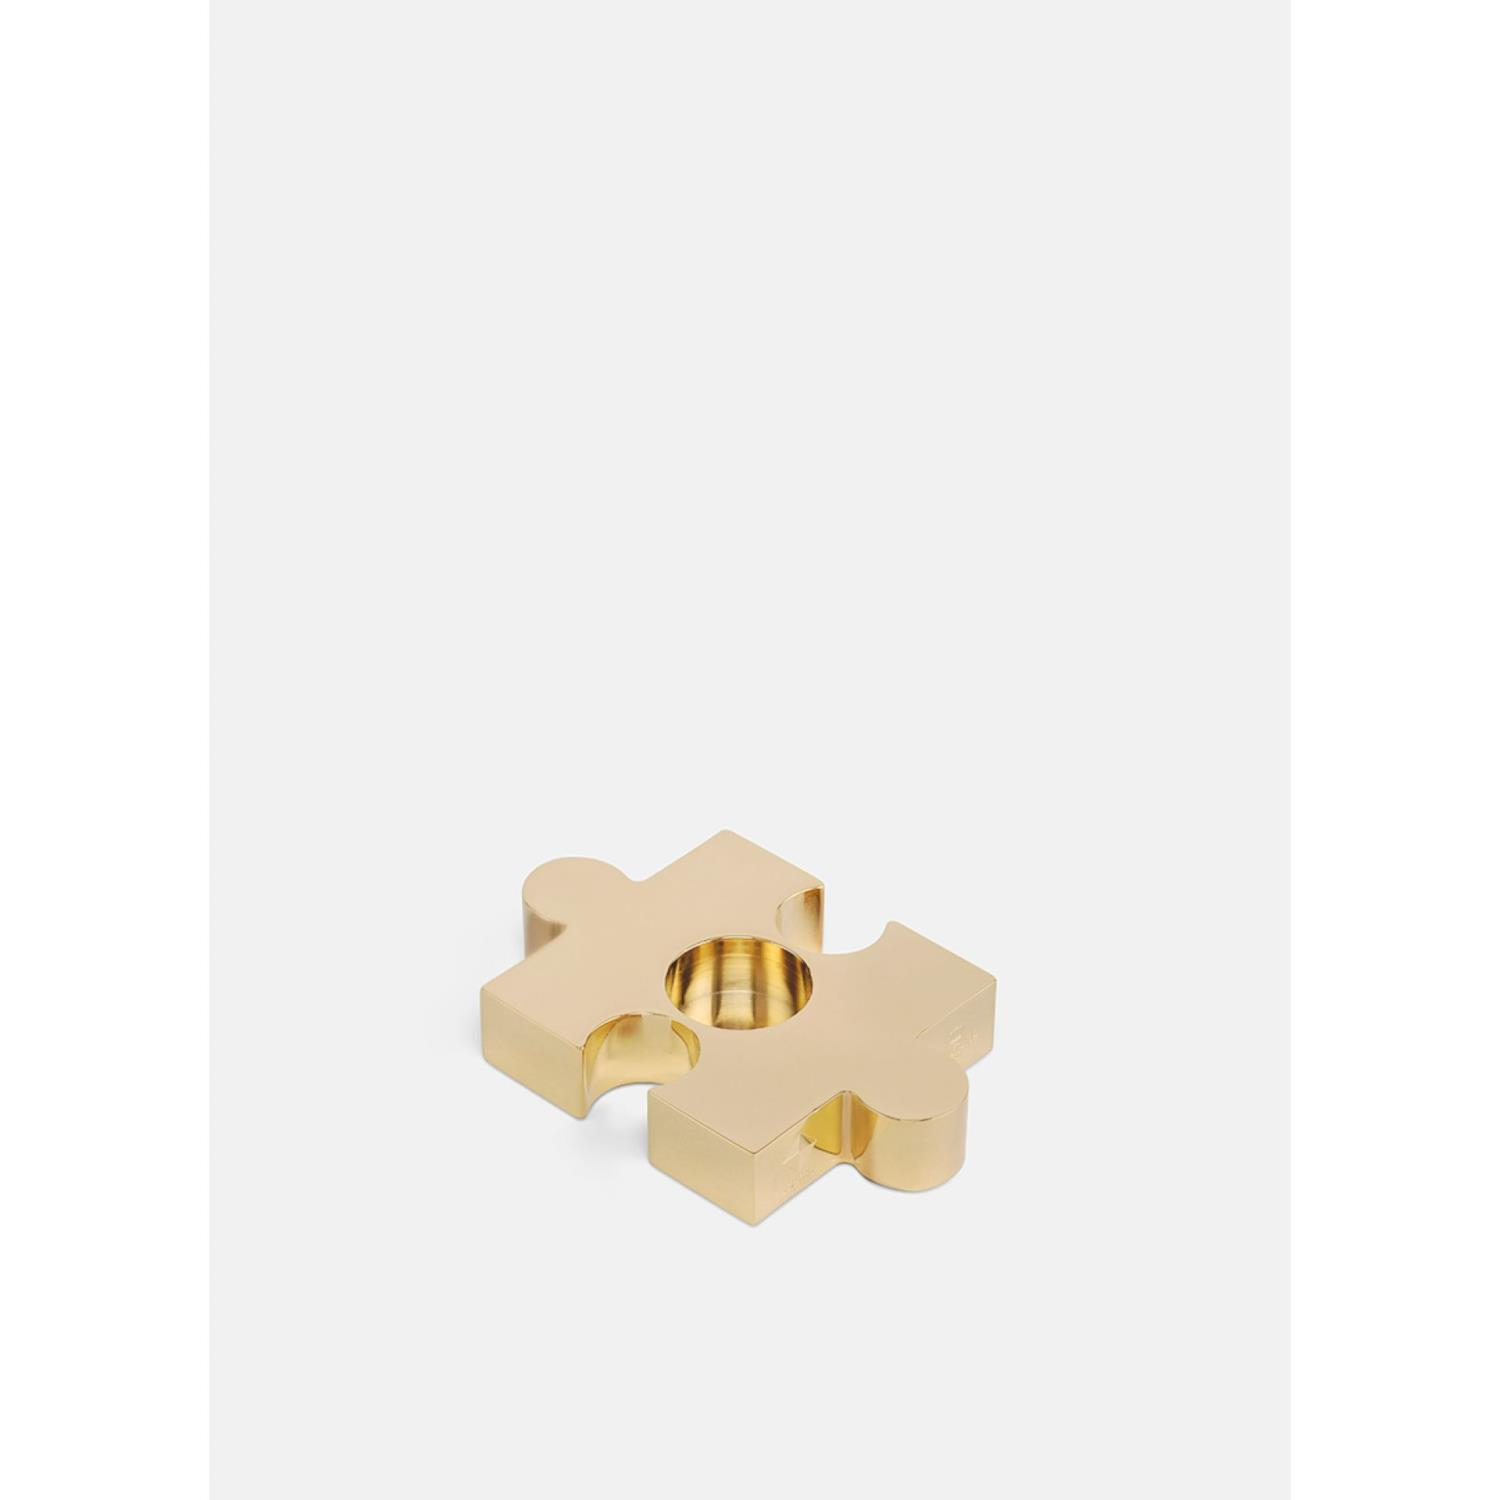 Puzzle Candleholder | Project Playground